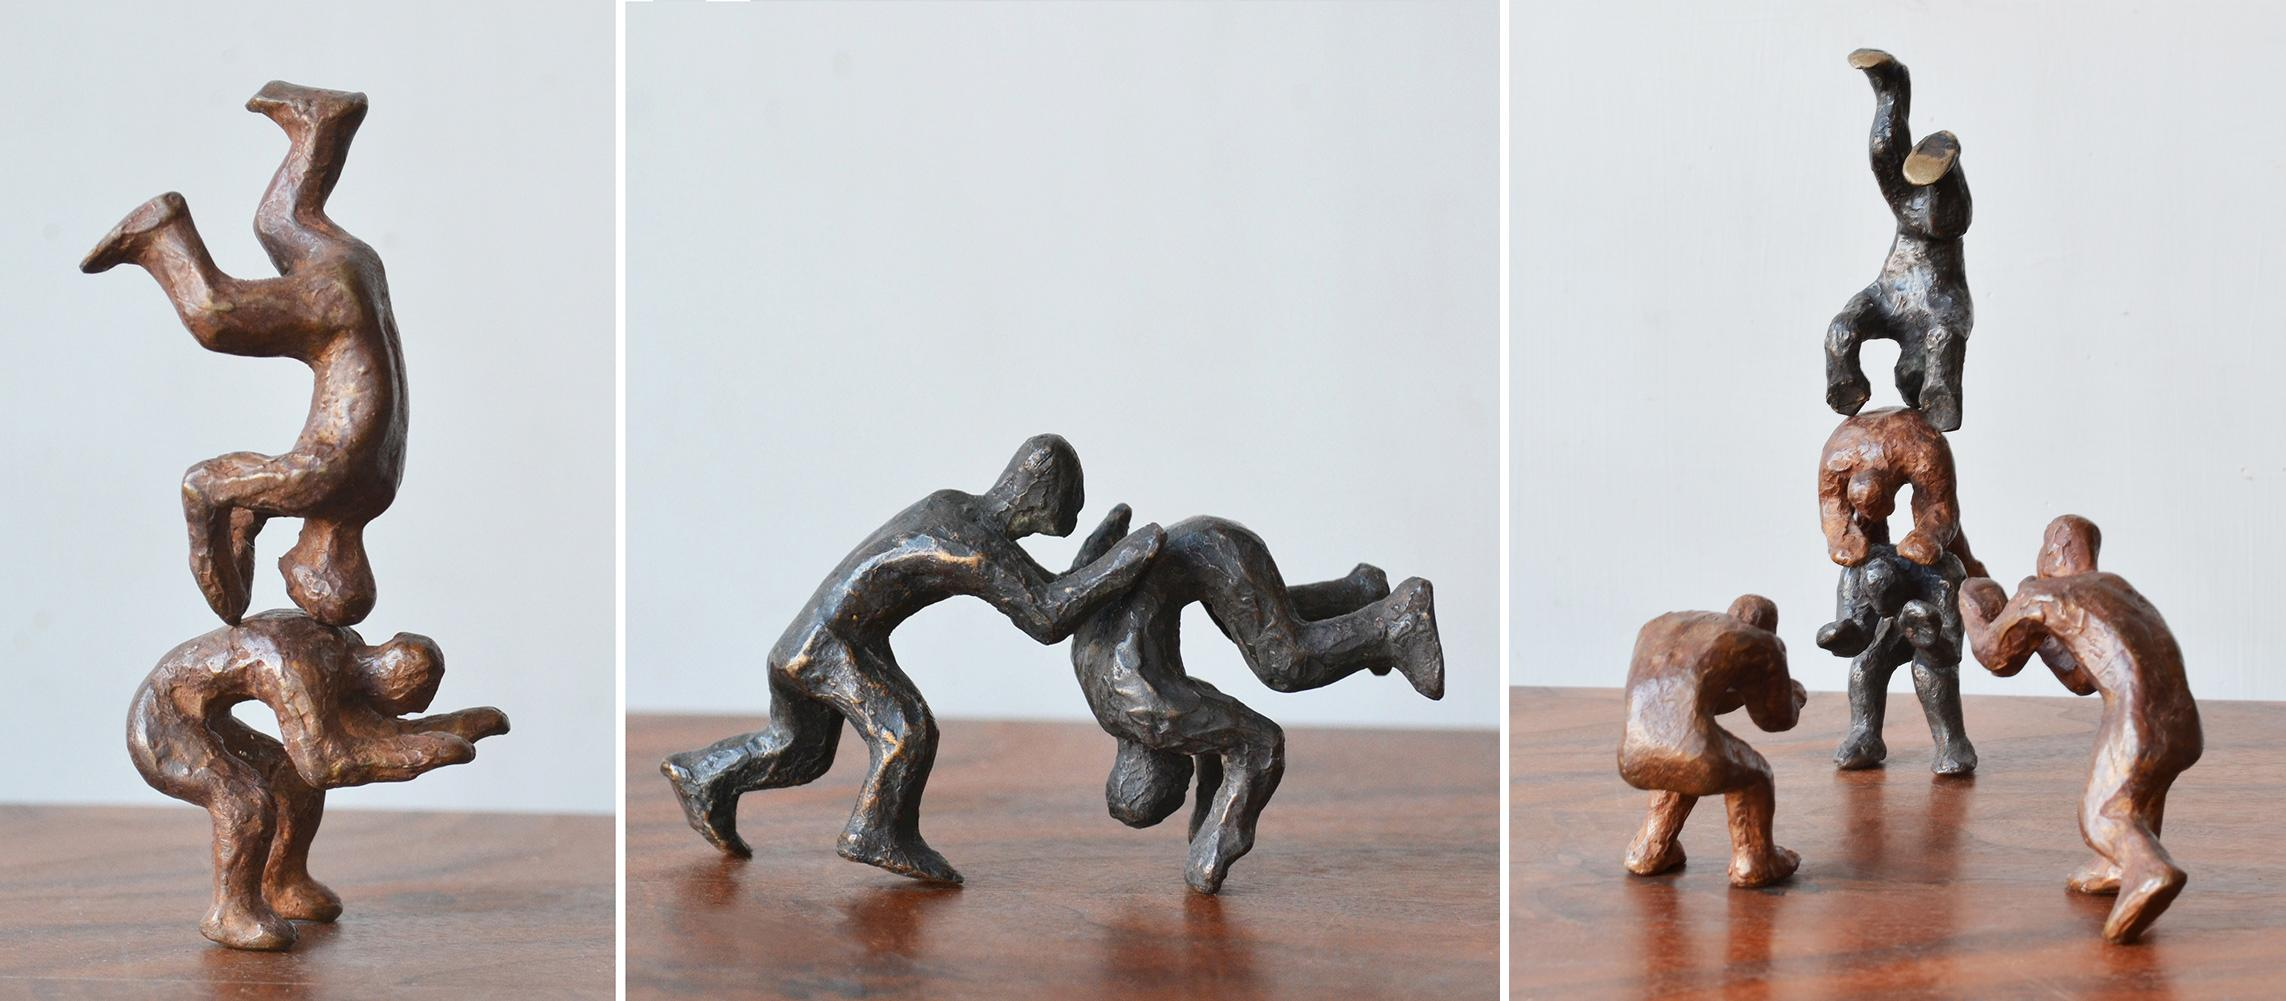 Why Fight When You Can Play? 2 Pairs of interactive miniature bronze figures